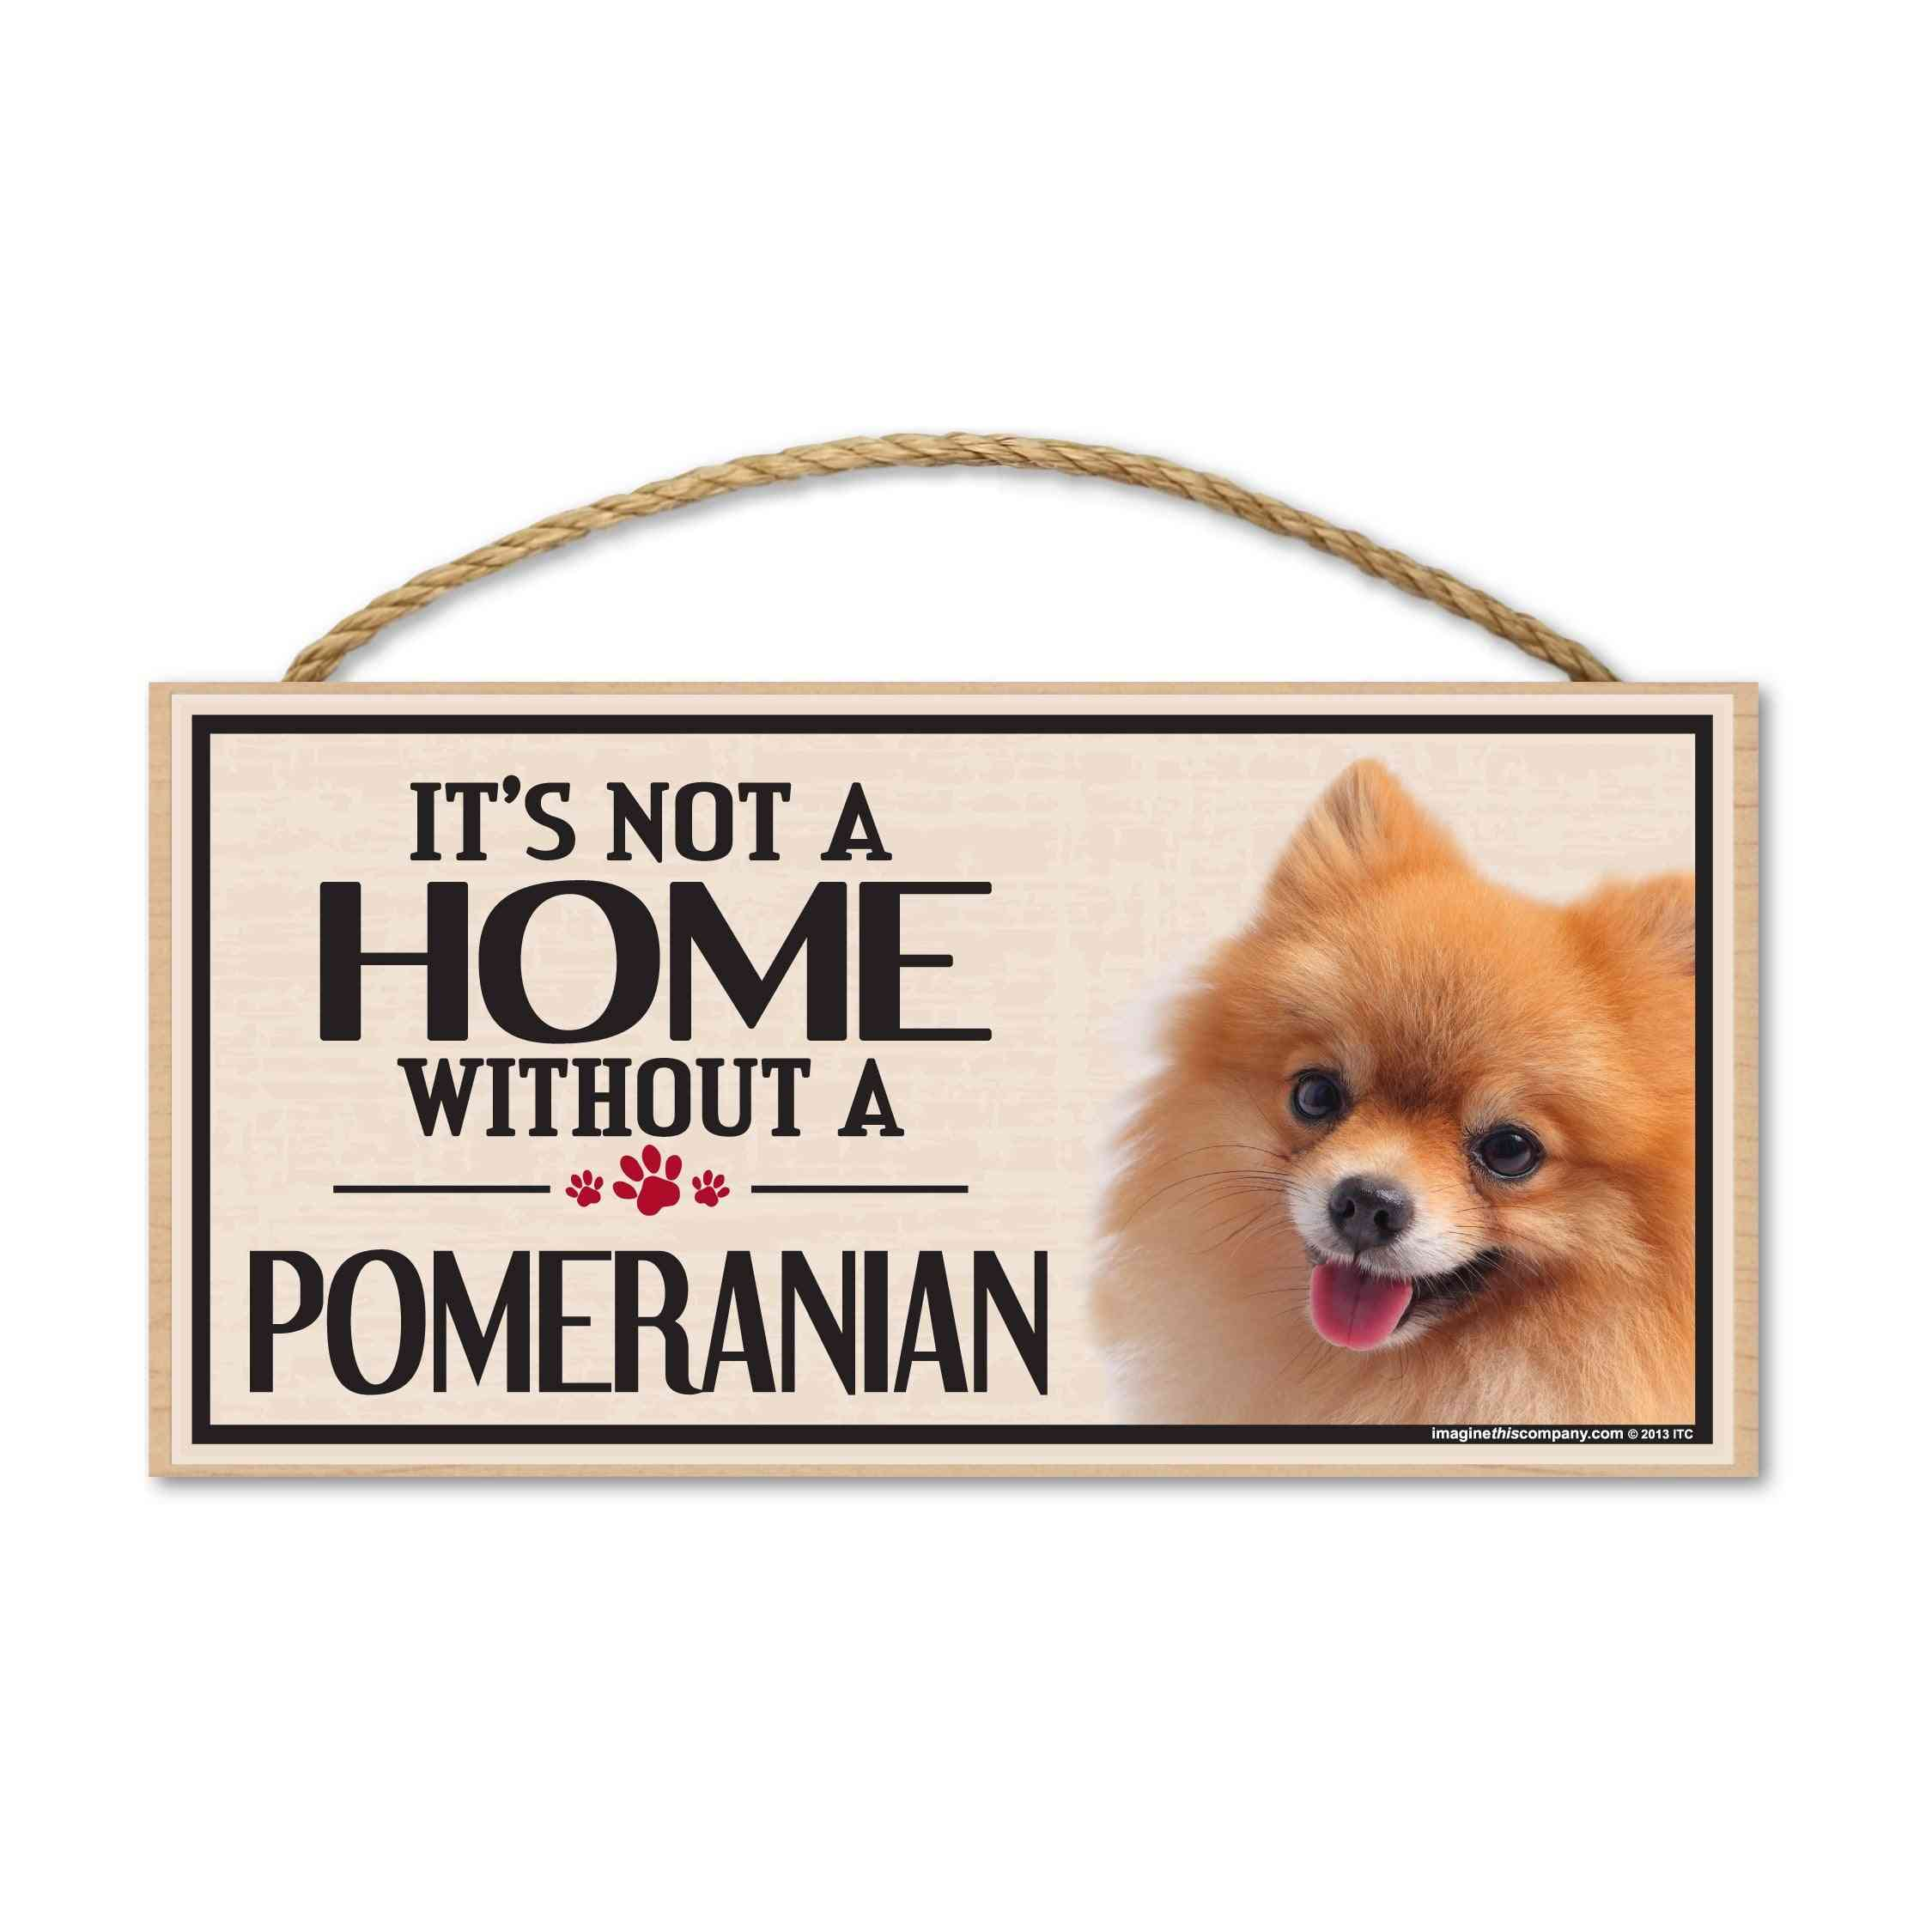 Sign, Wood, It's Not A Home Without A Pomeranian, 10